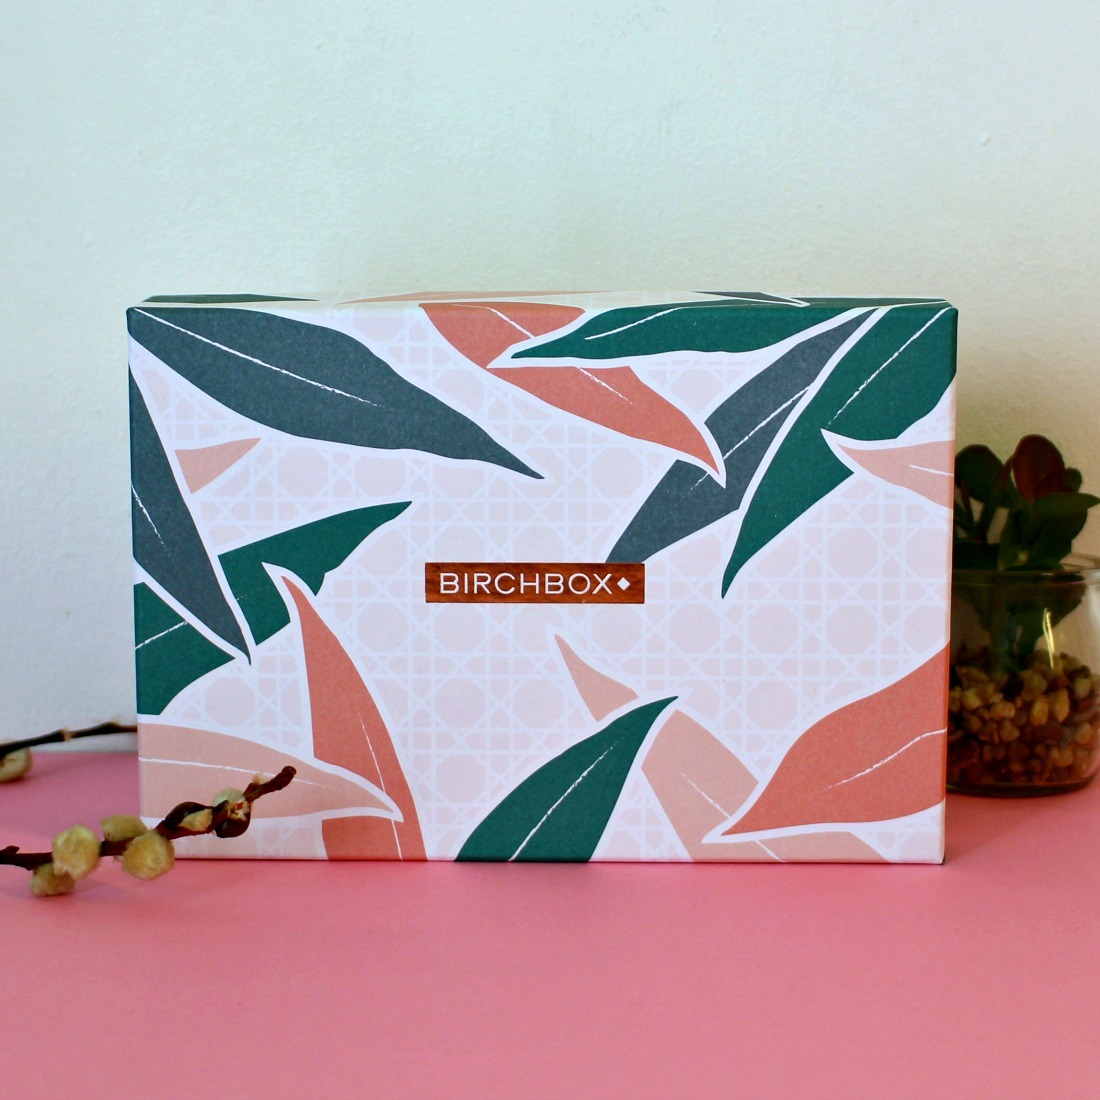 birchbox au naturel